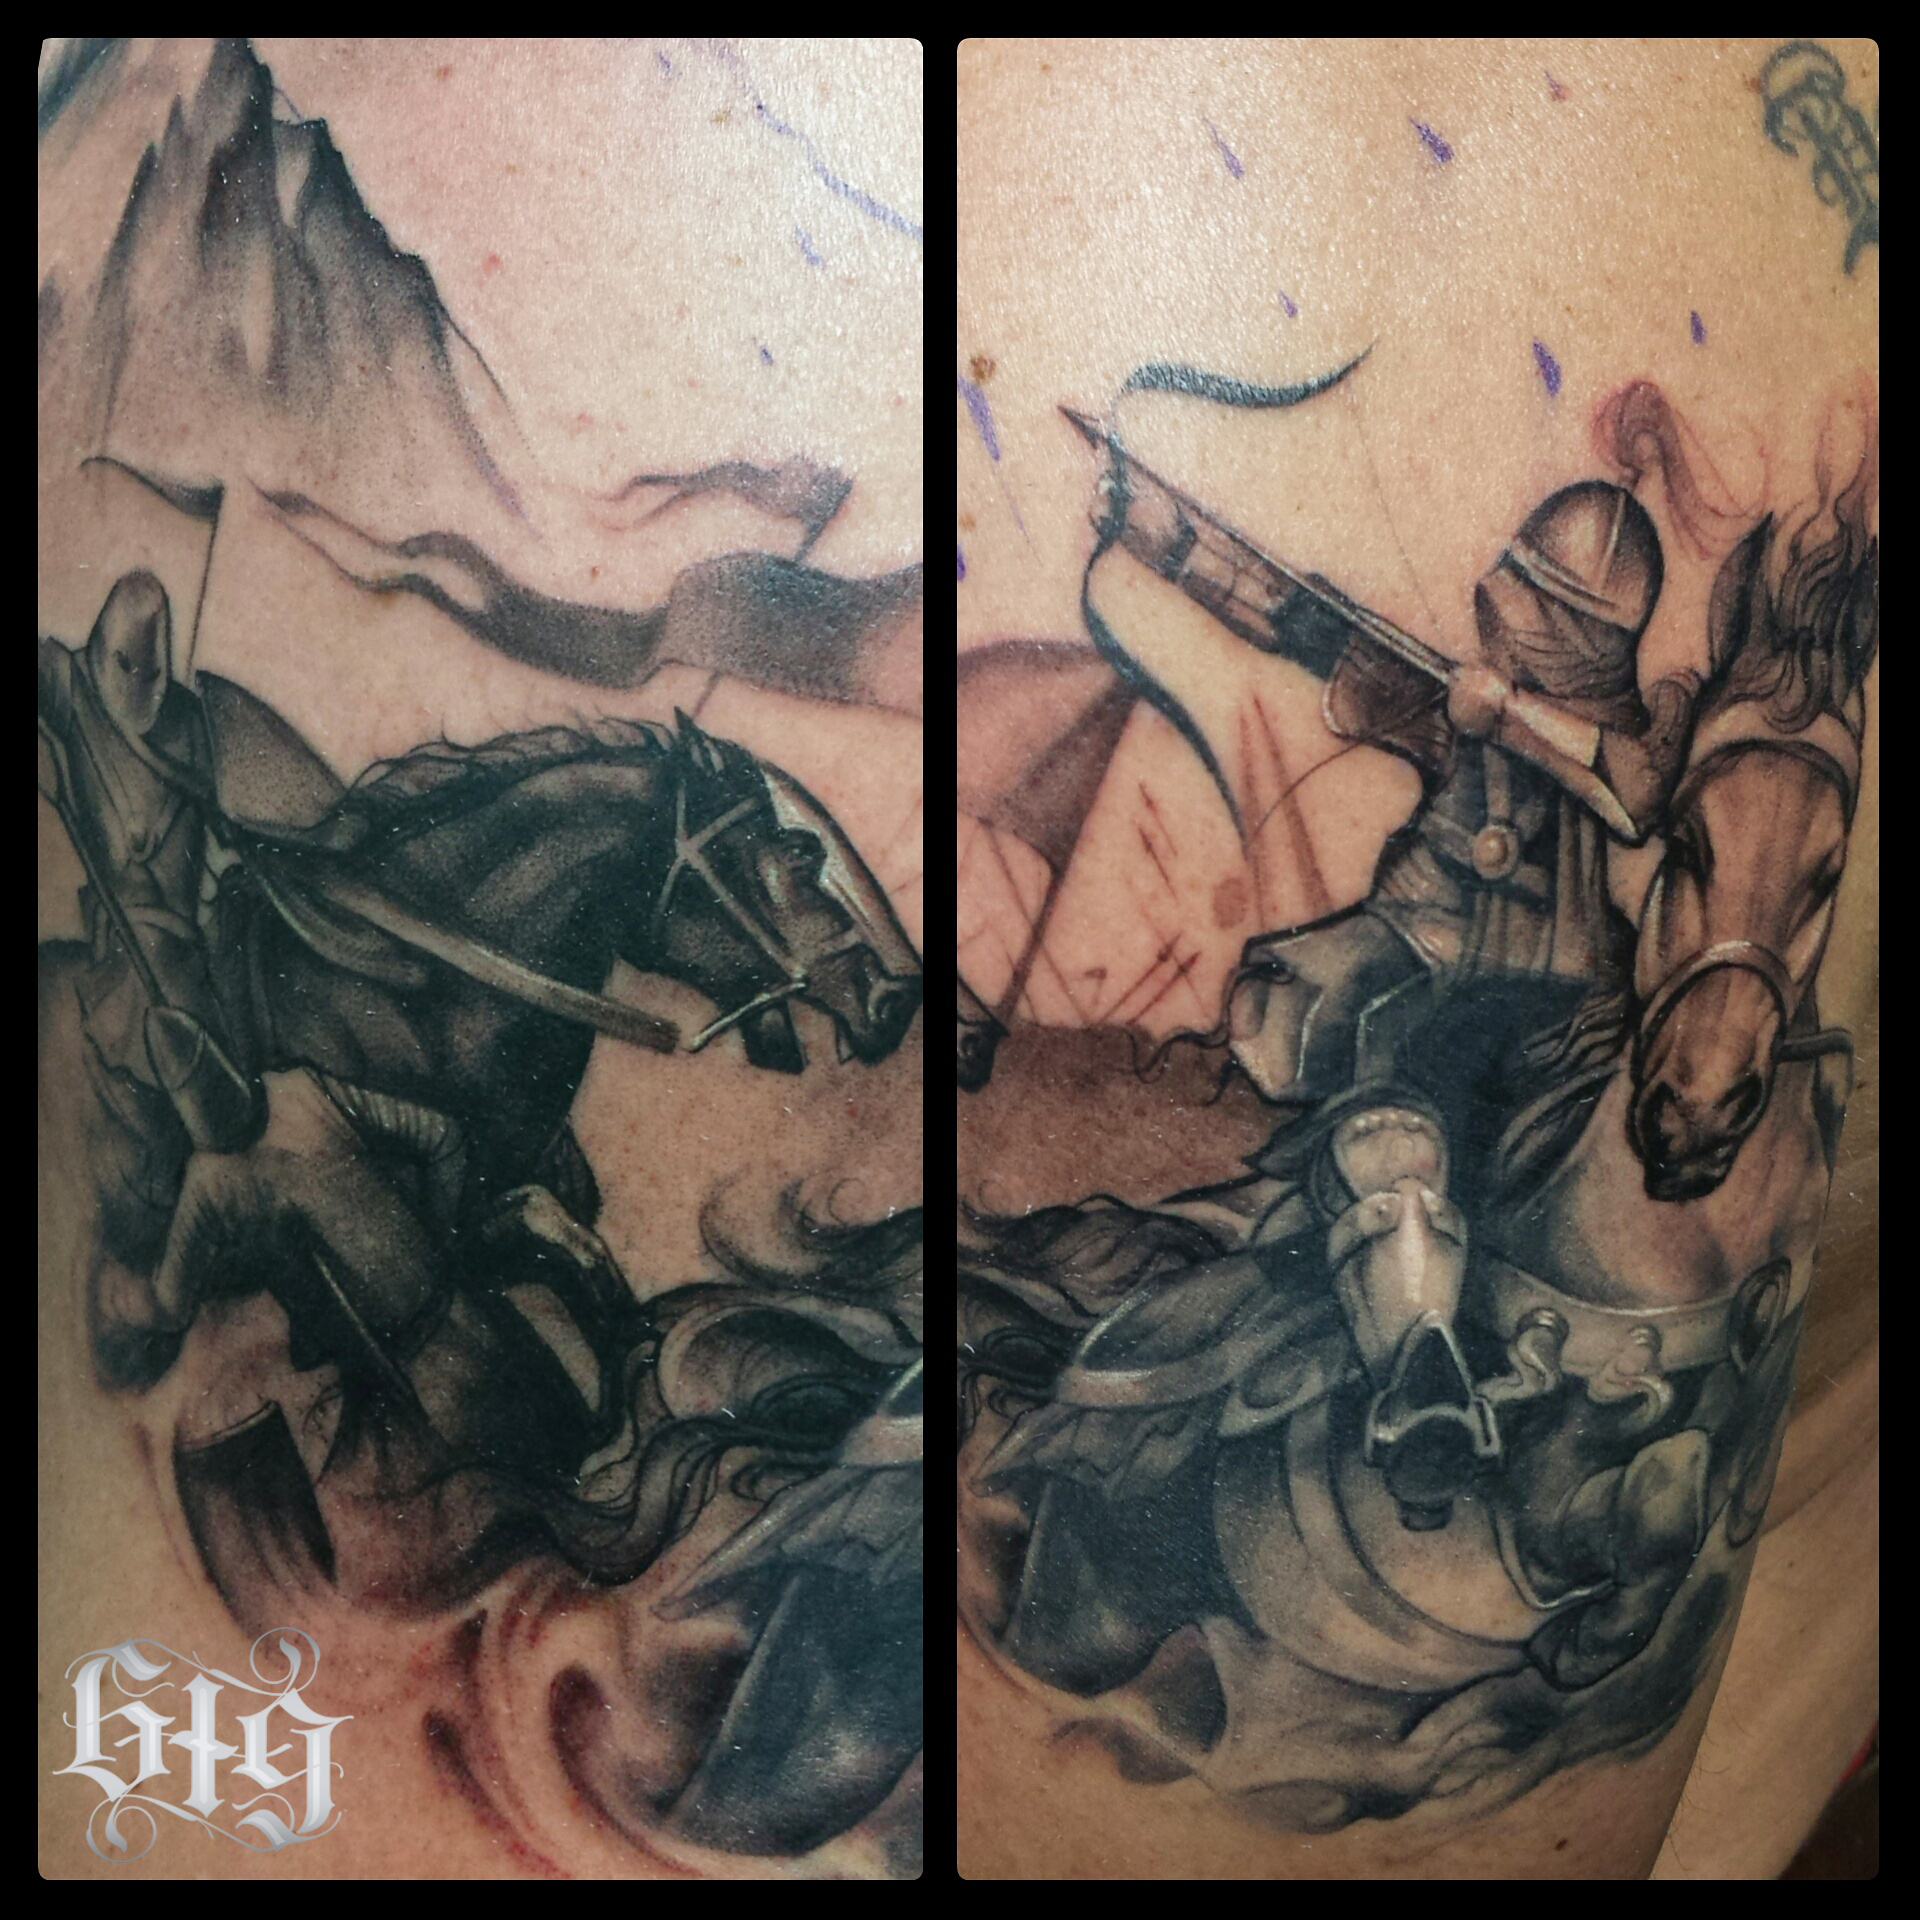 Black and Gray Medieval Knights in battle. Half sleeve upper arm tattoo.